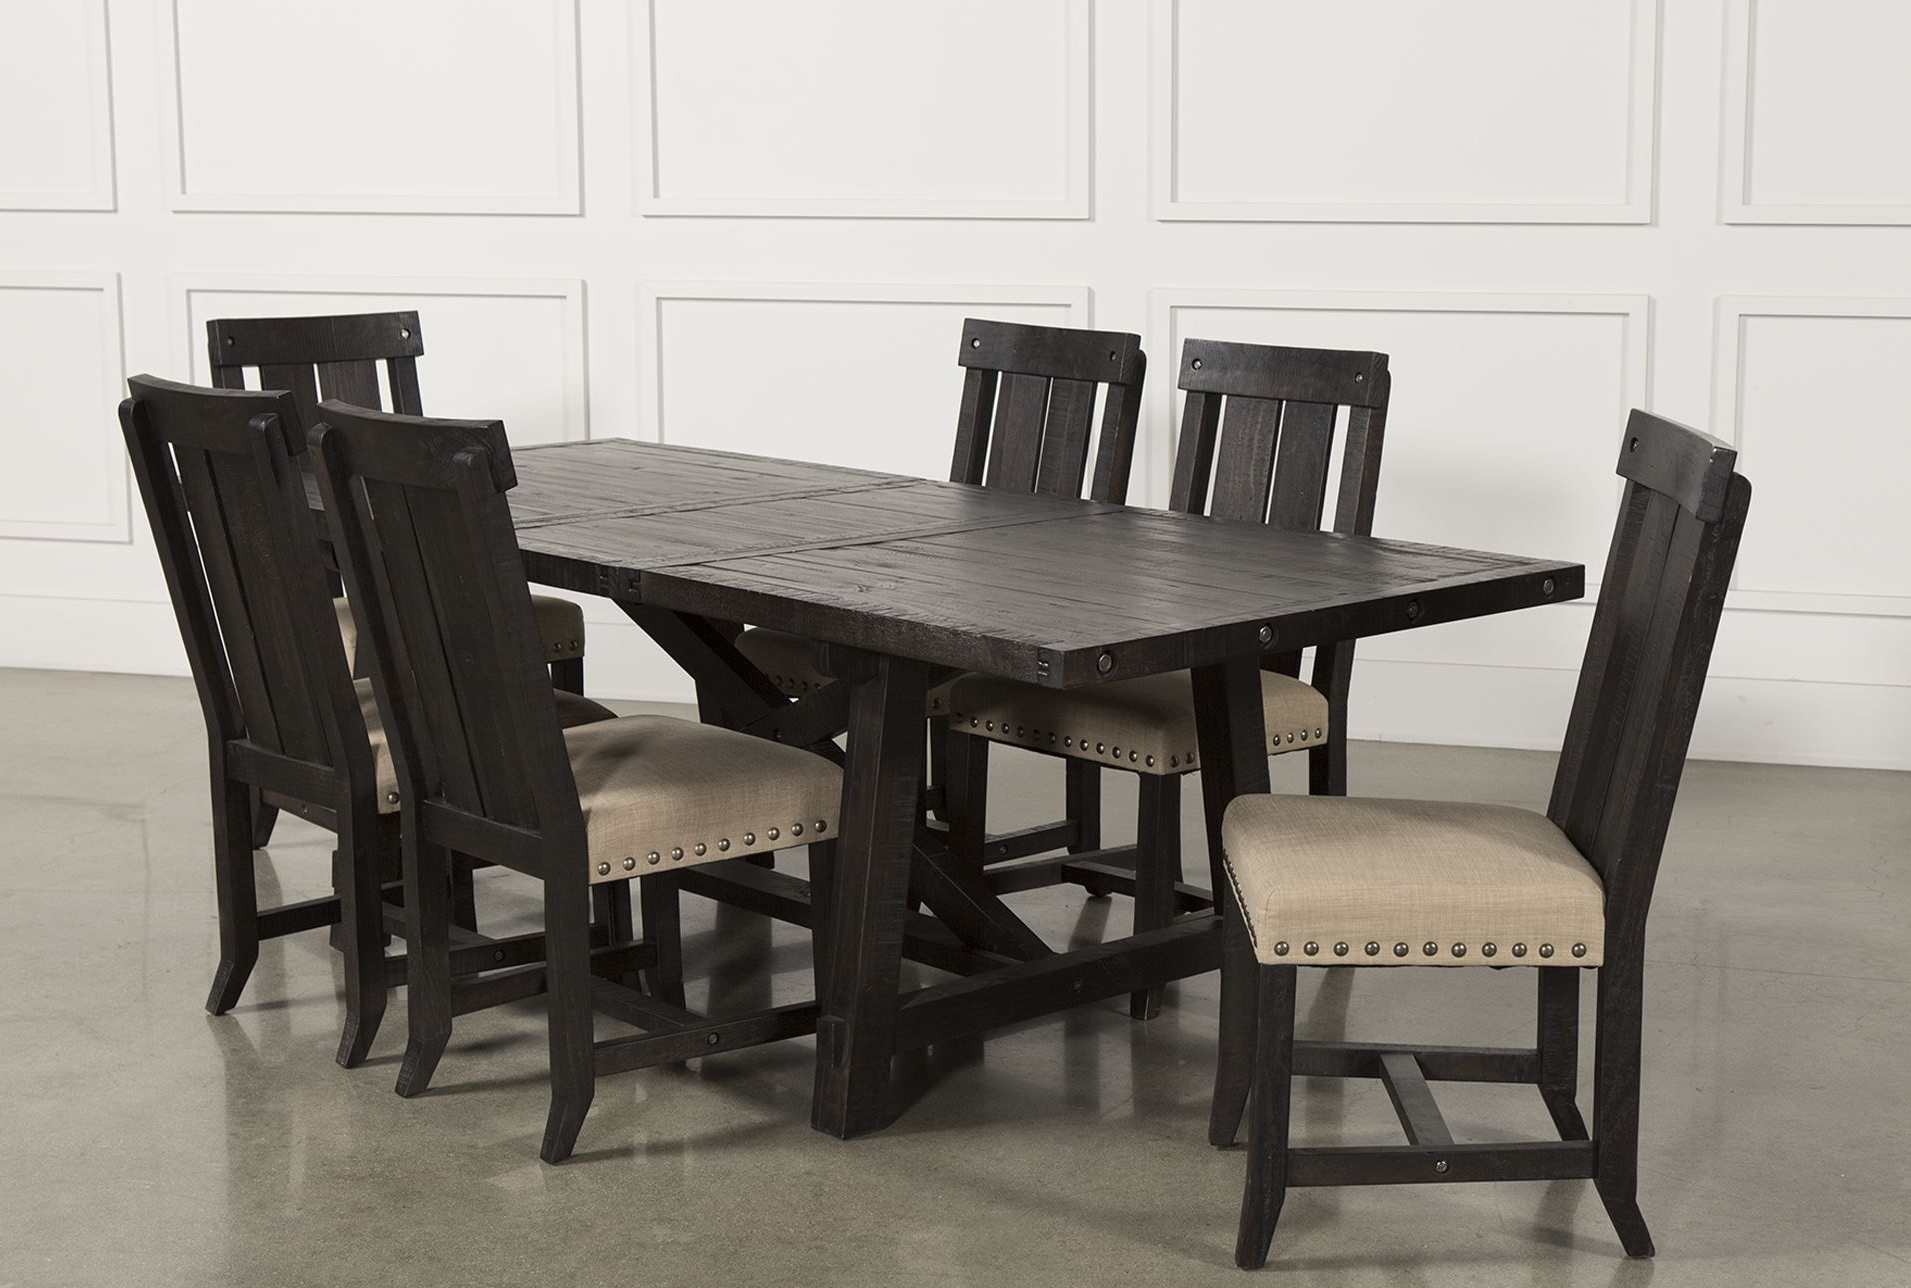 Home, Future Home Regarding Jaxon Grey 5 Piece Round Extension Dining Sets With Wood Chairs (View 4 of 25)